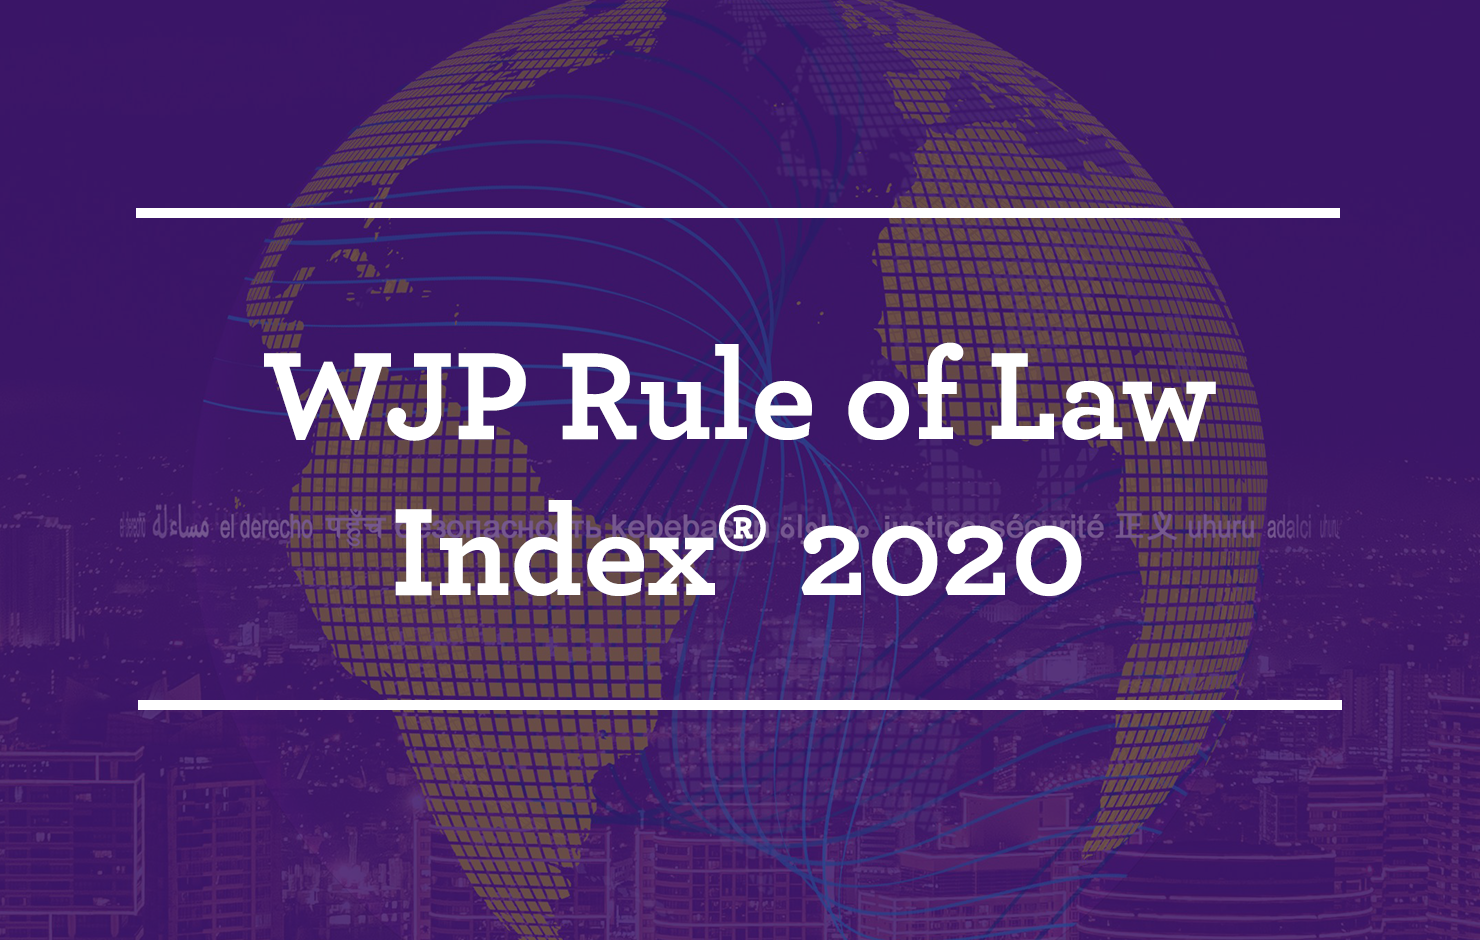 WJP Rule of Law 2019